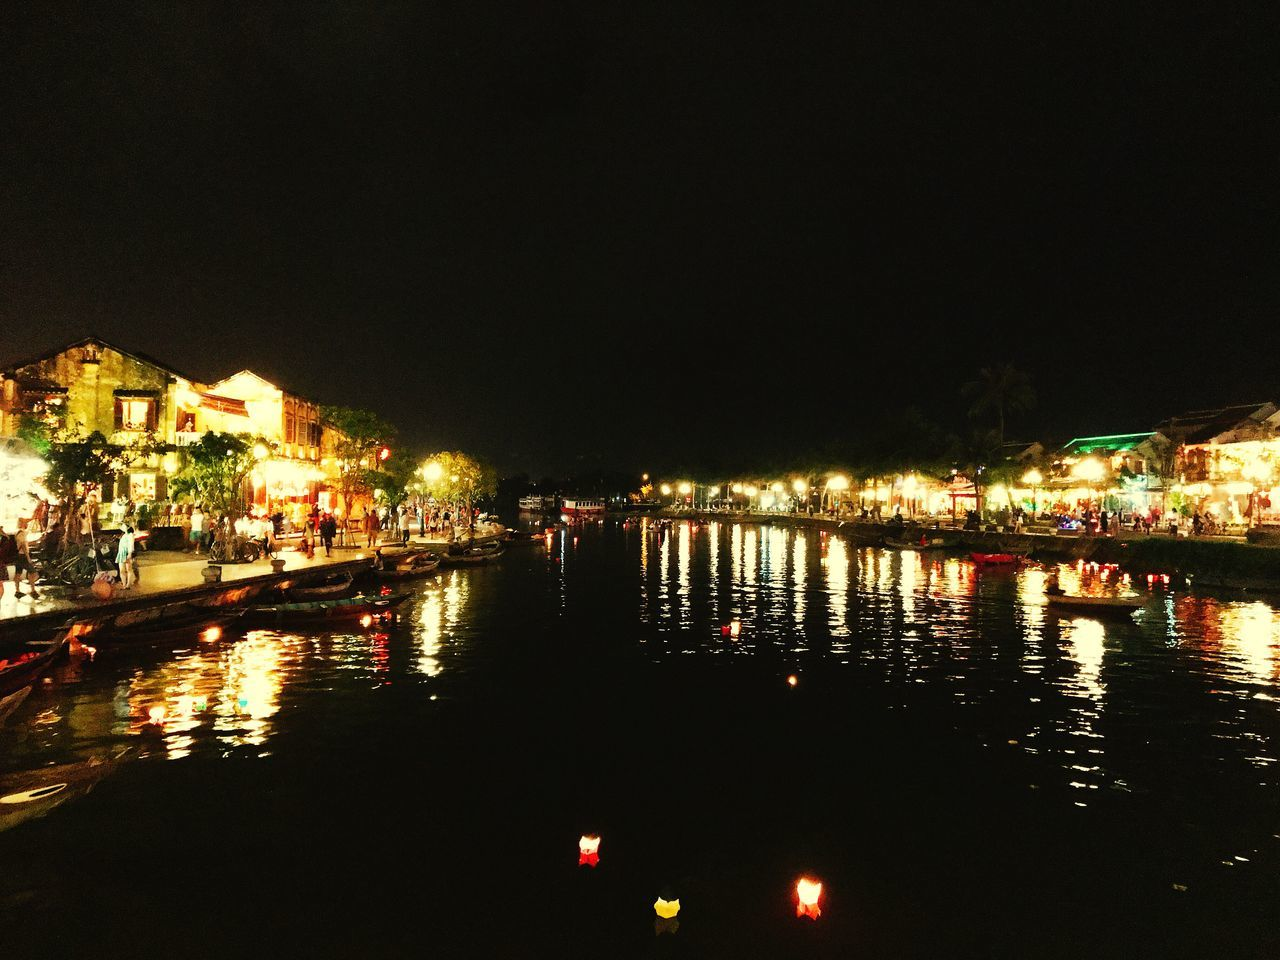 Hoi An Night View Water Reflection Vietnam River View